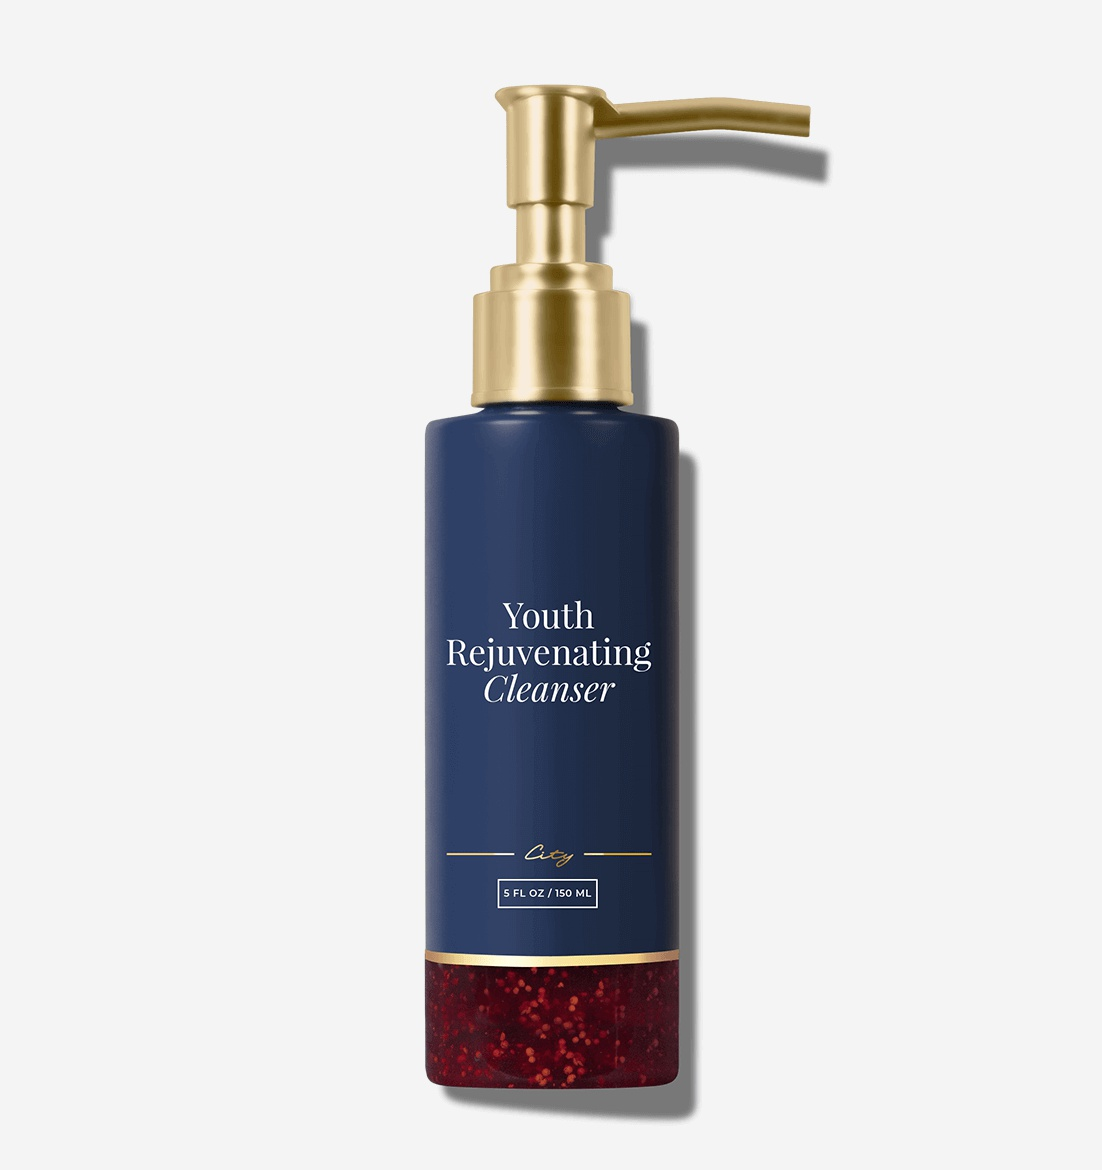 City Beauty Youth Rejuvenating Cleanser